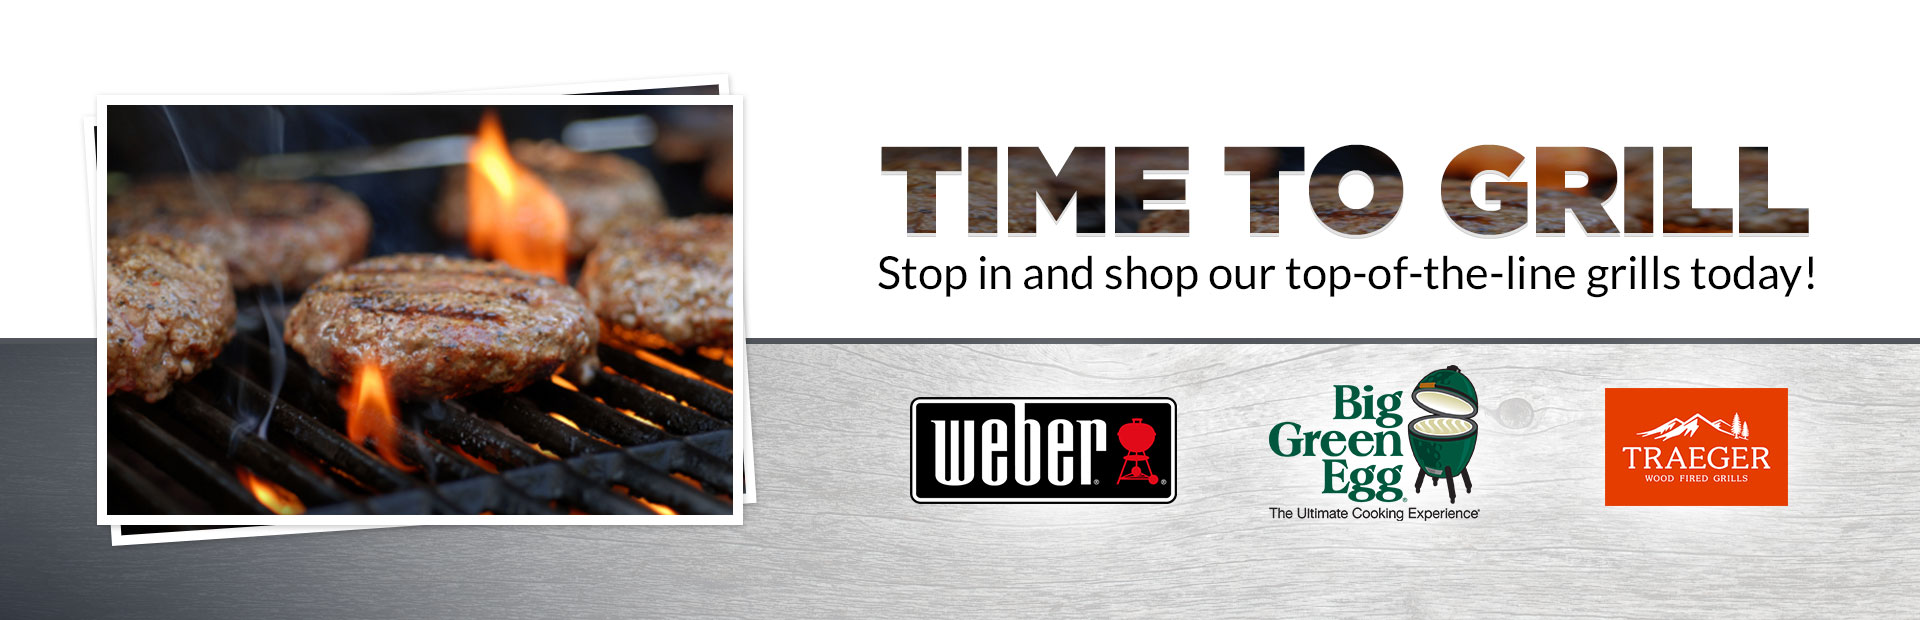 Stop in and shop our top-of-the-line grills today! Contact us for details.